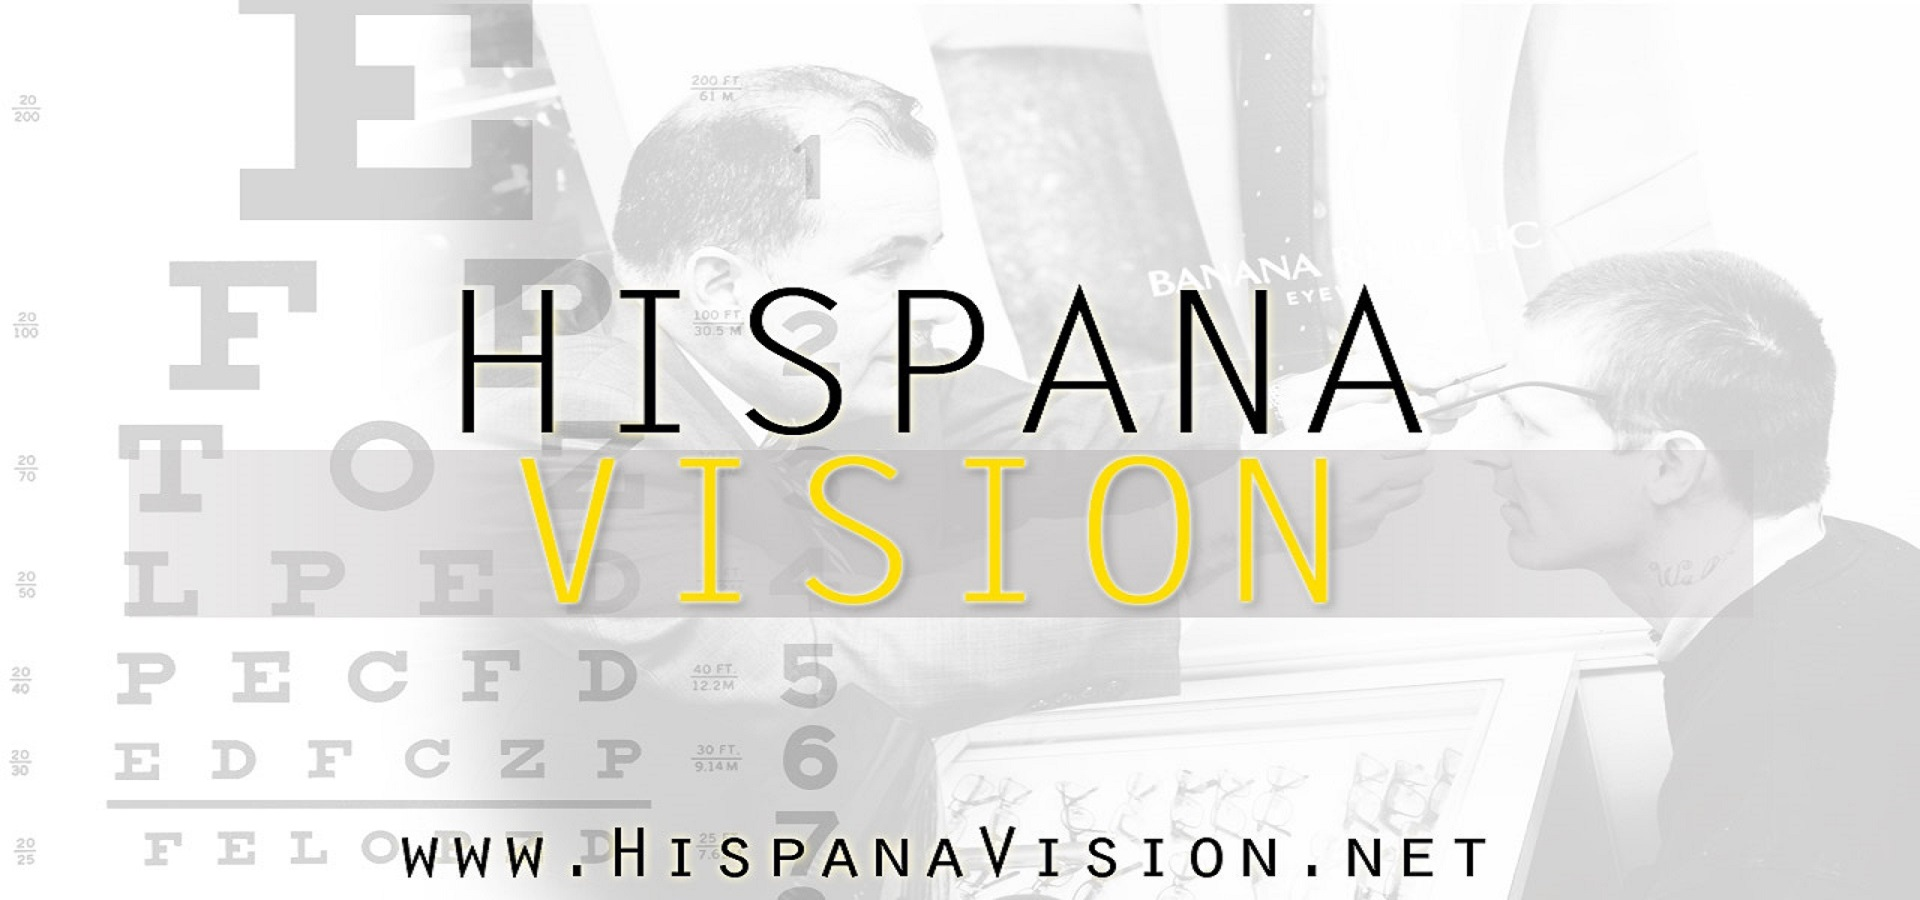 Hispana-vision-CT-86-Park-St-Hartford-CT2